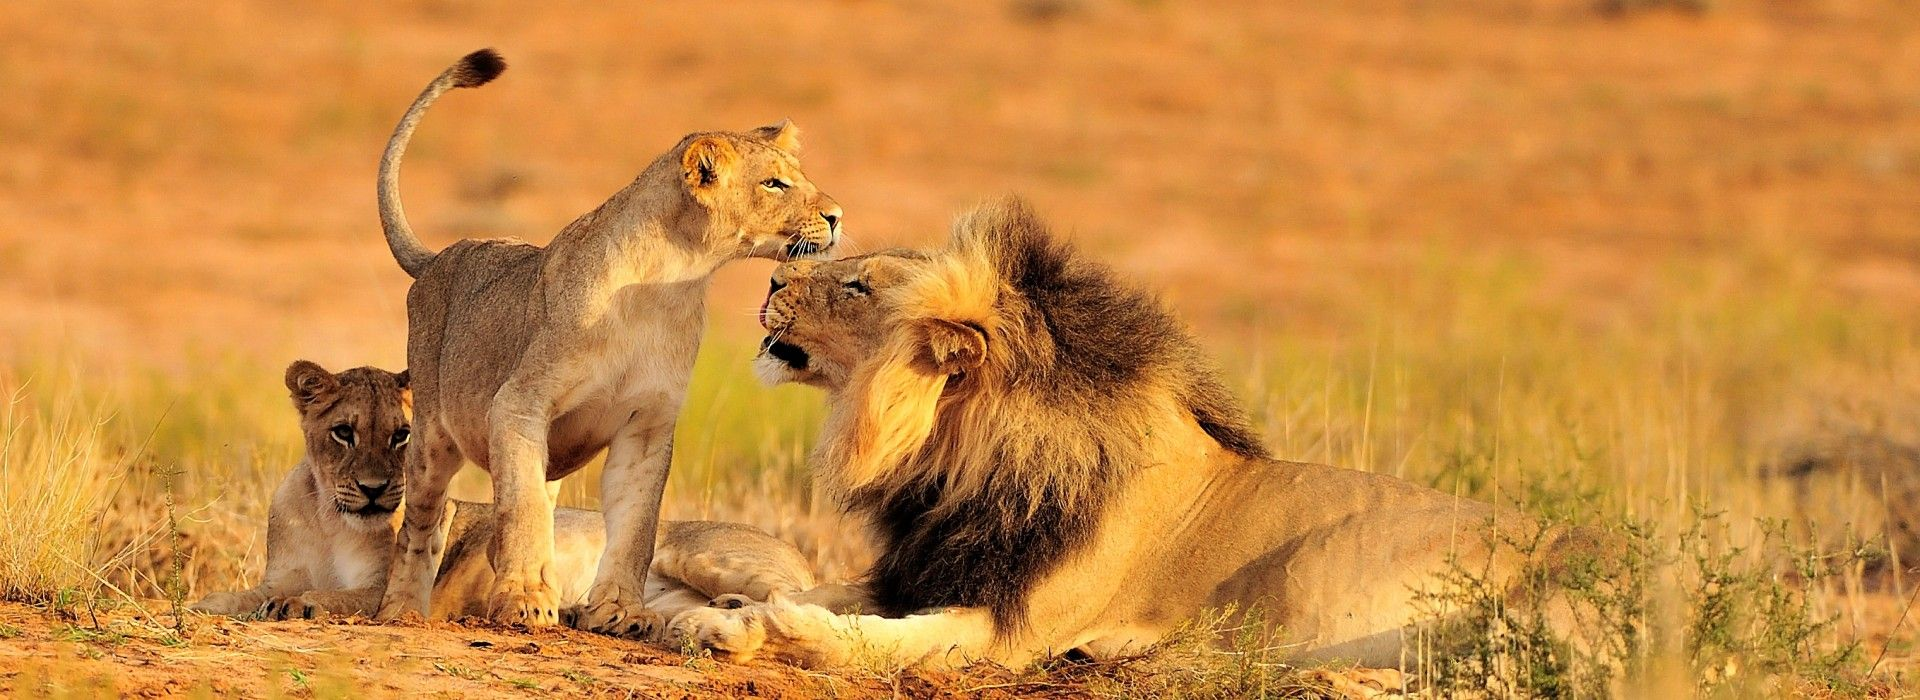 Cultural, religious and historic sites Tours in Kruger National Park